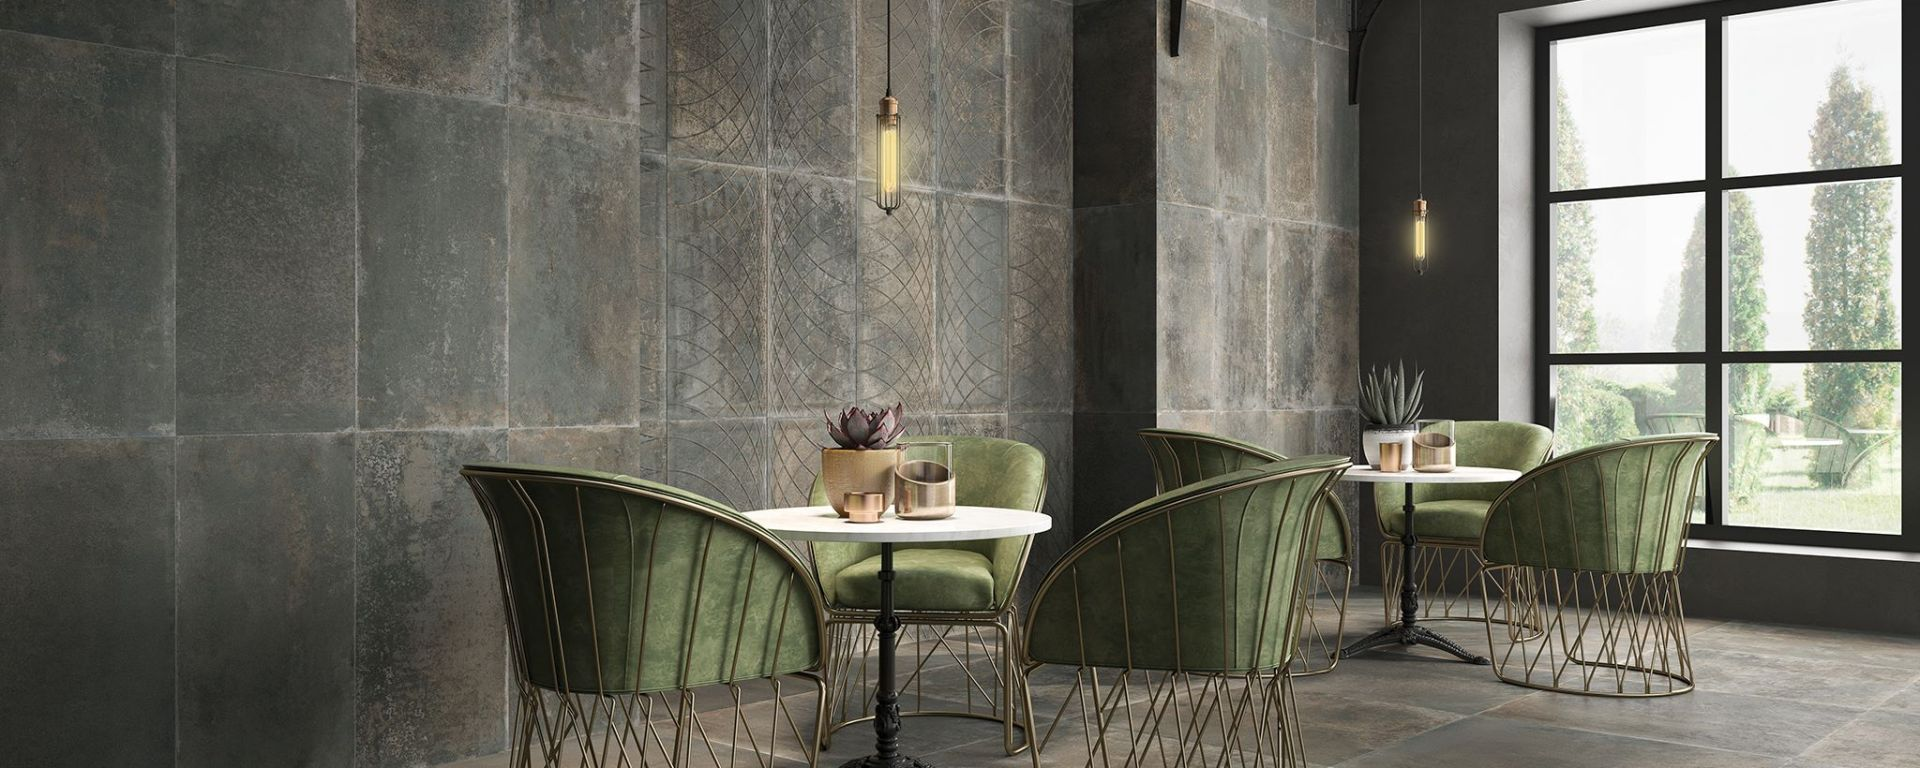 Pav. Foundry Bronce (900x900mm & 450x450mm) and Rev. Compass Bronce (450x900mm) from Saloni